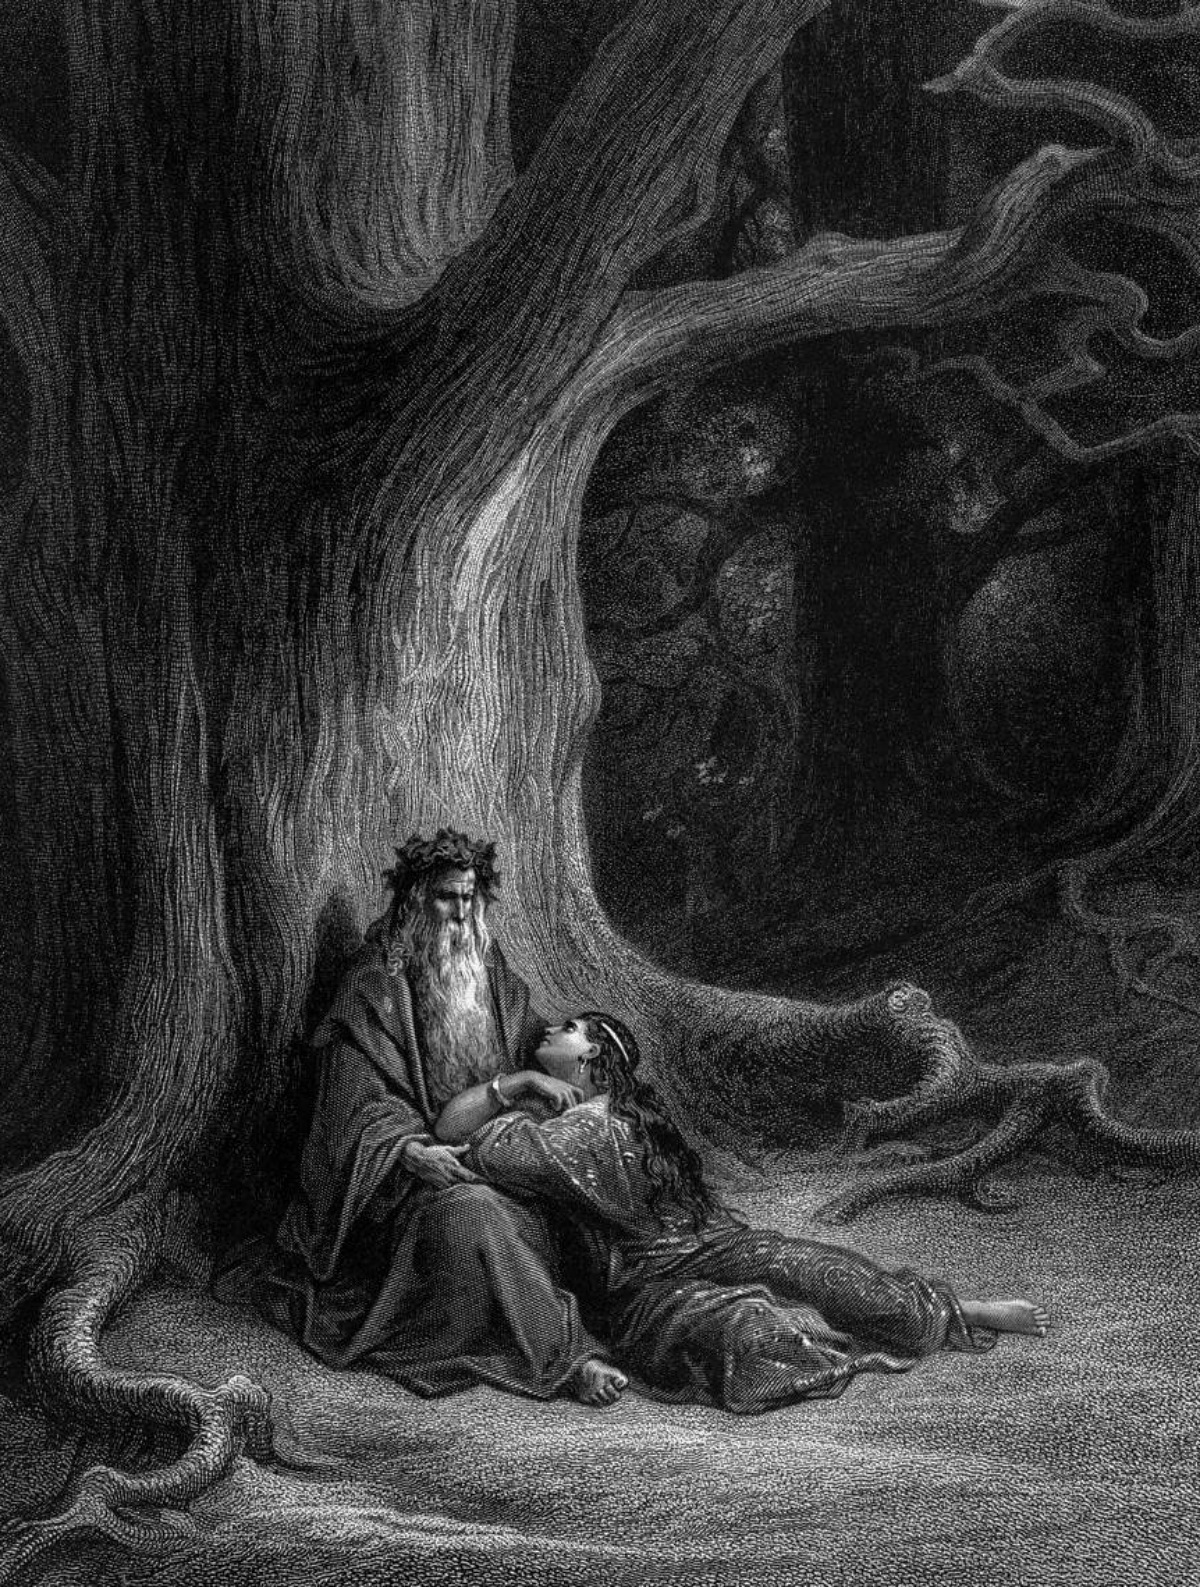 Merlin and the Lady of the Lake engraving 1868